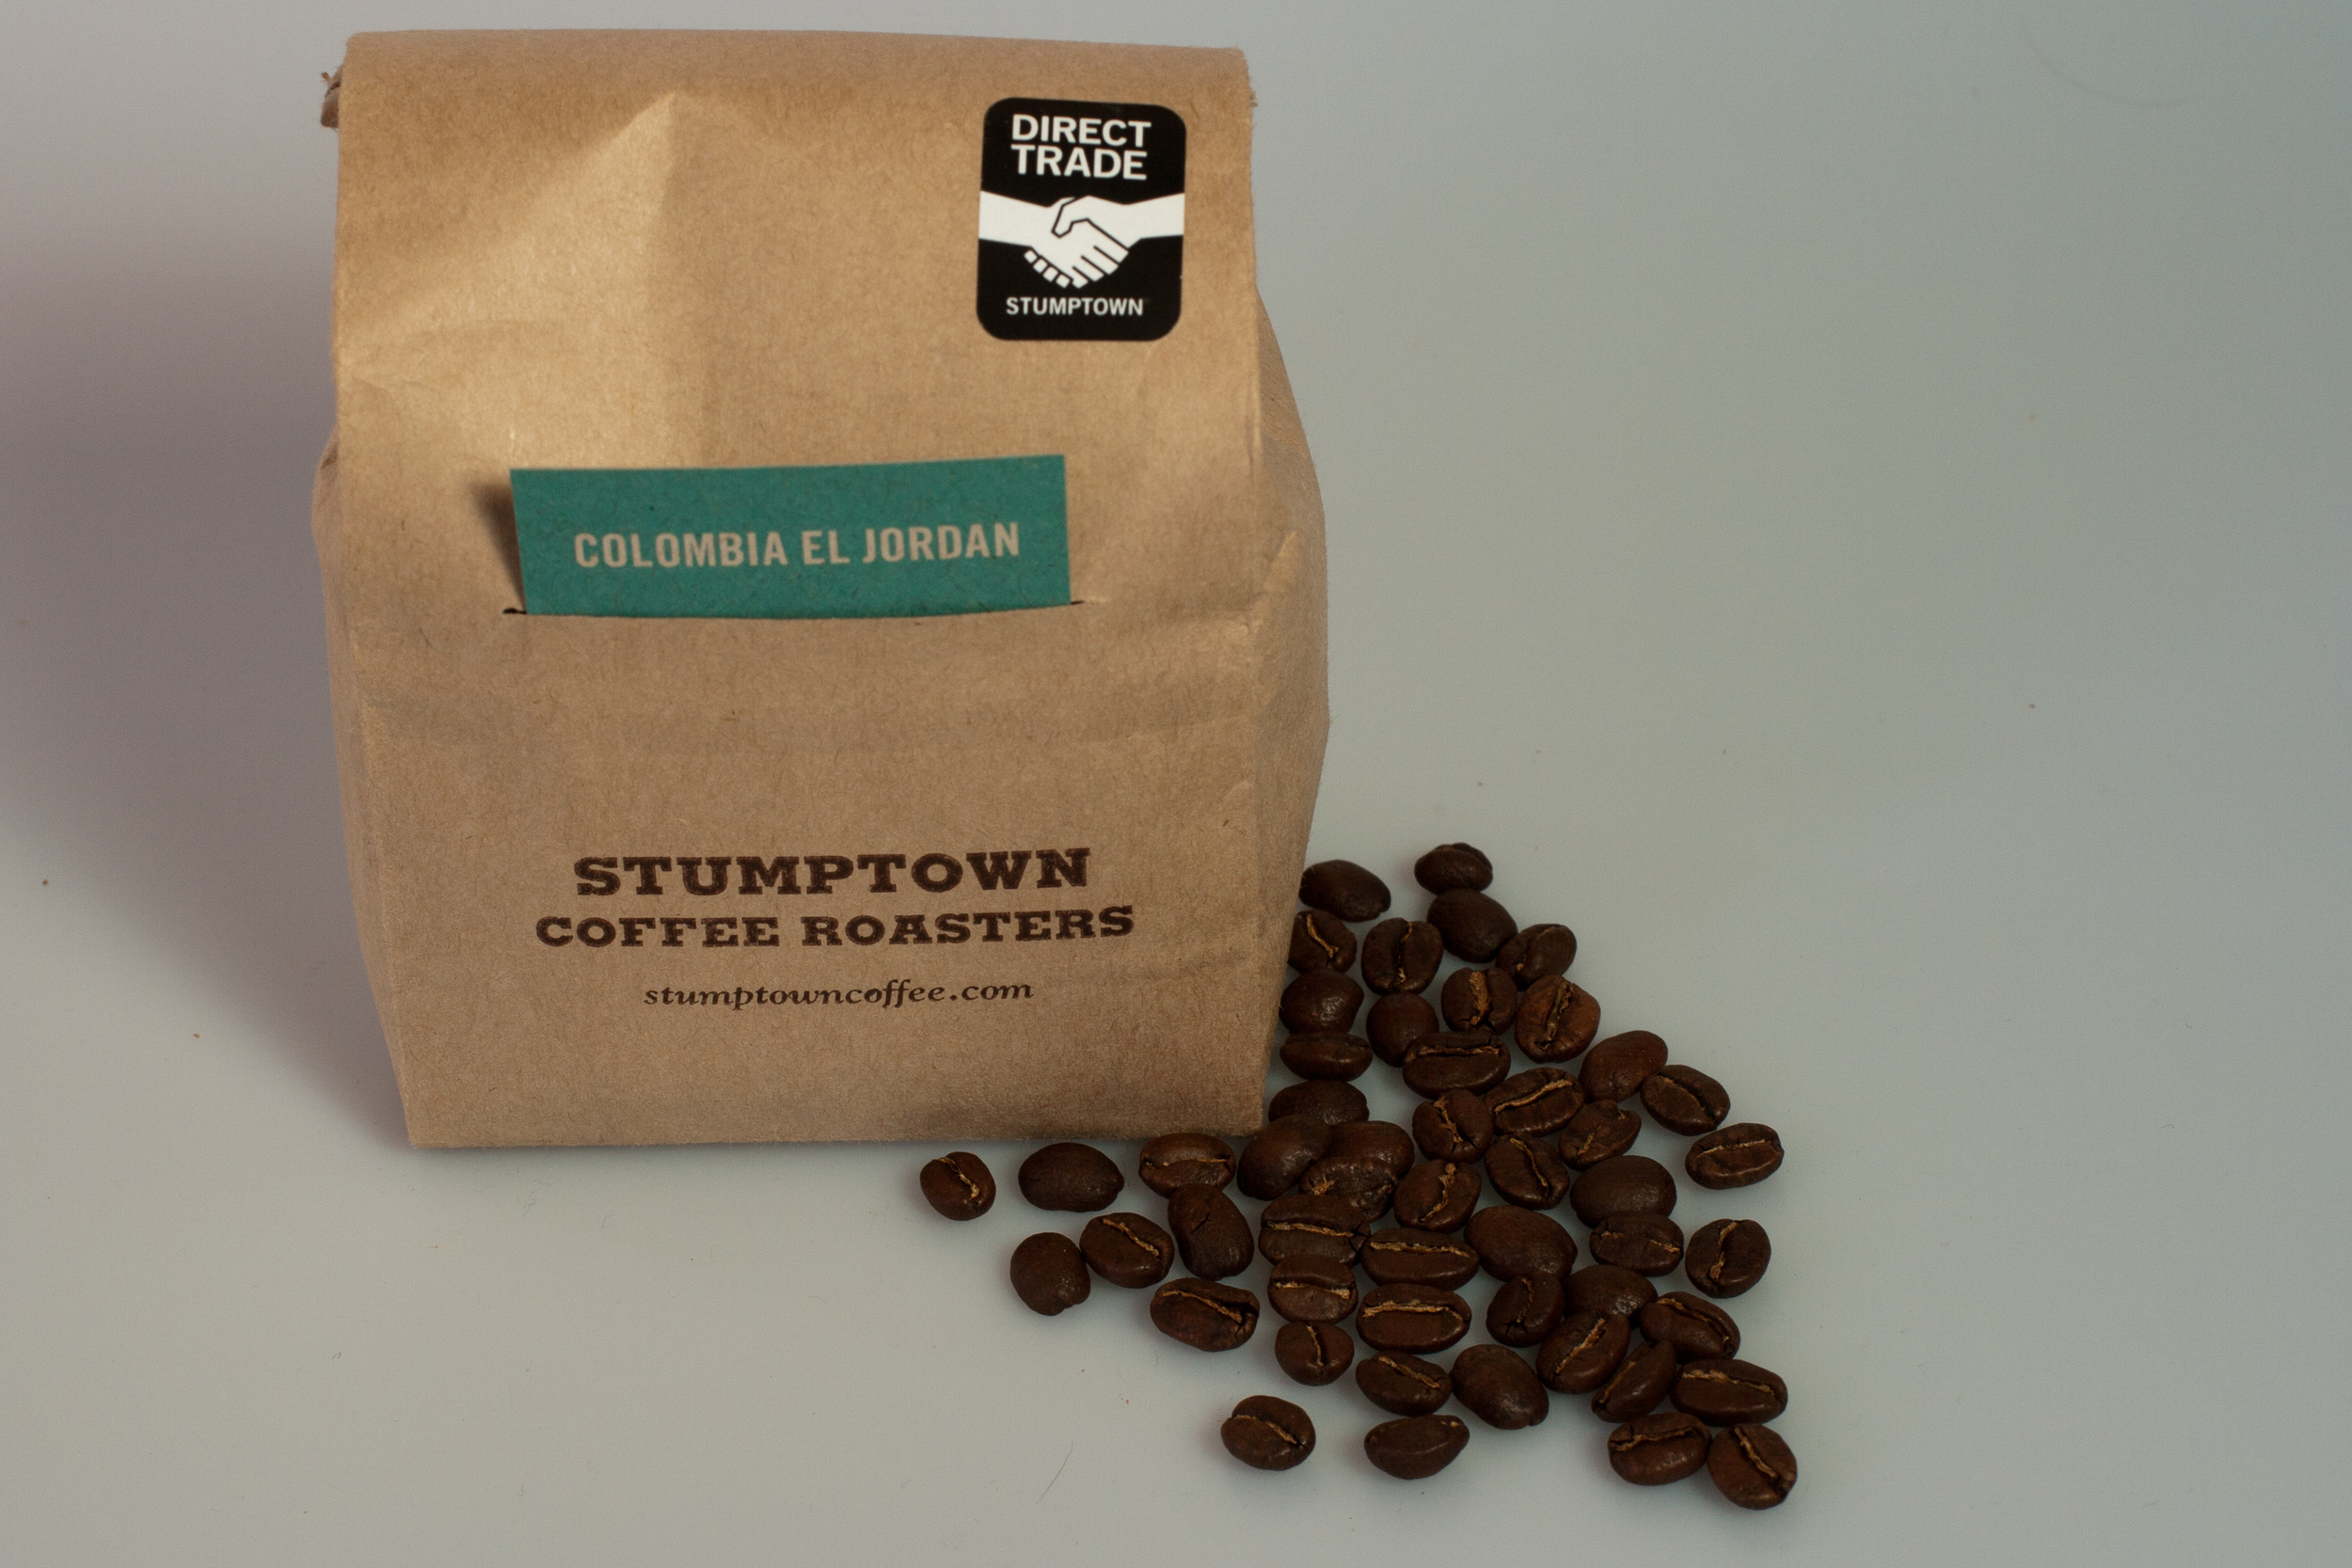 Stumptown Columbia El Jordan Direct Trade